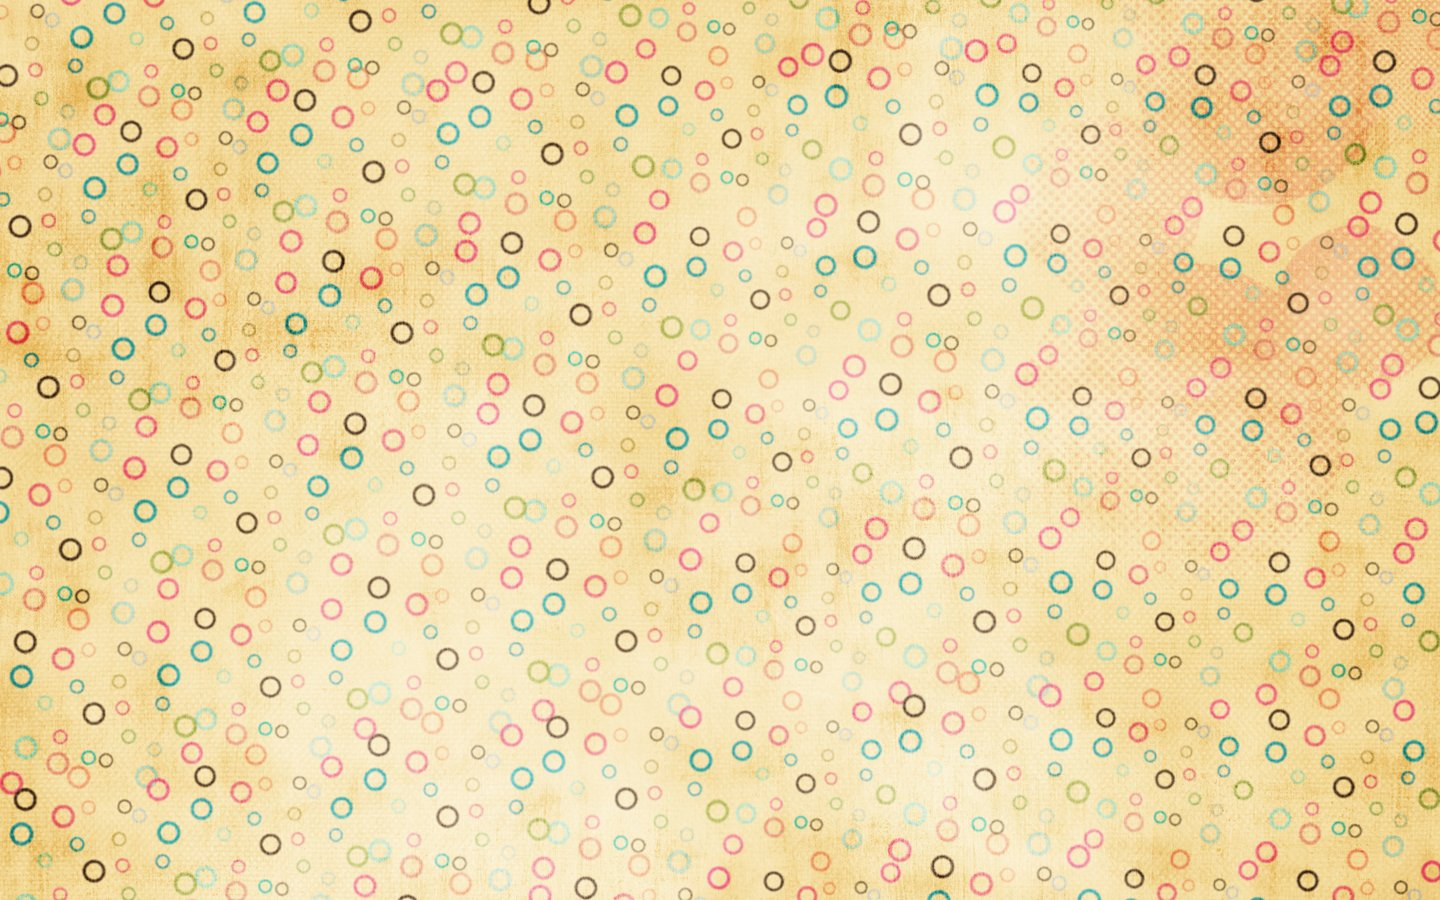 Yellow dots background wallpaper 19637